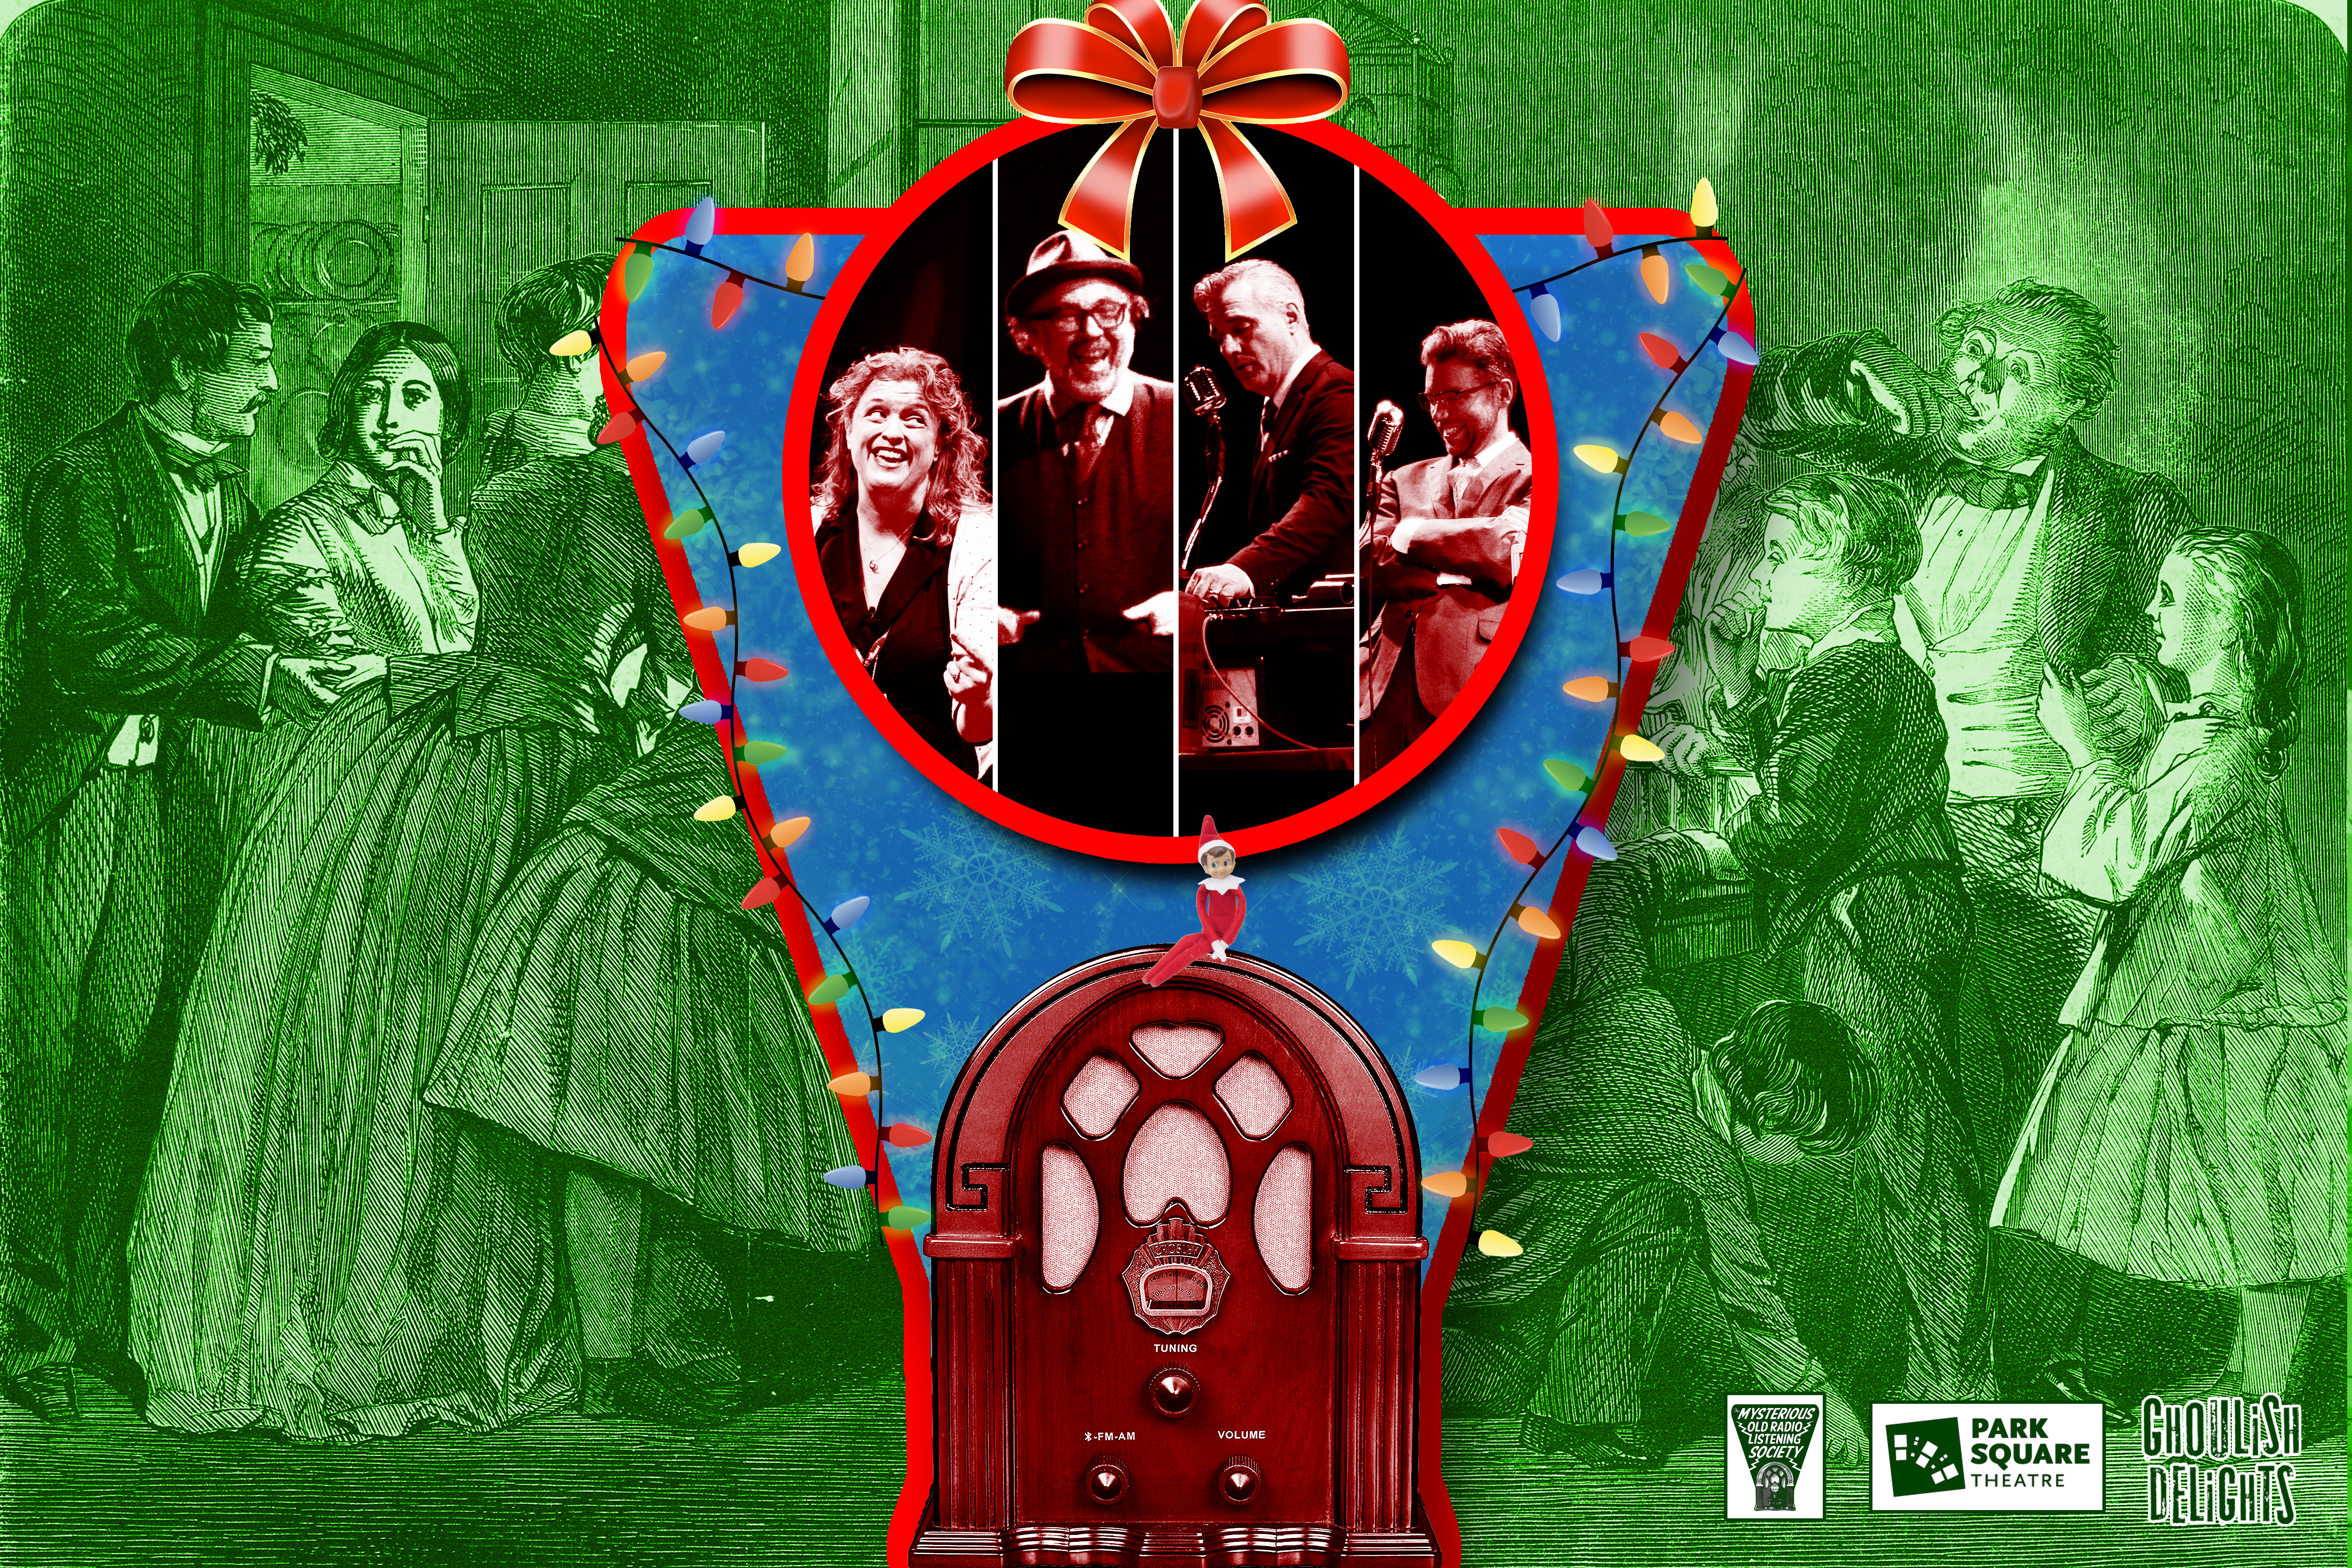 A vintage radio draped in multi-colored lights and a red bow. At the center are black and white photos of four radio performers. In the background is a victorian holiday scene.